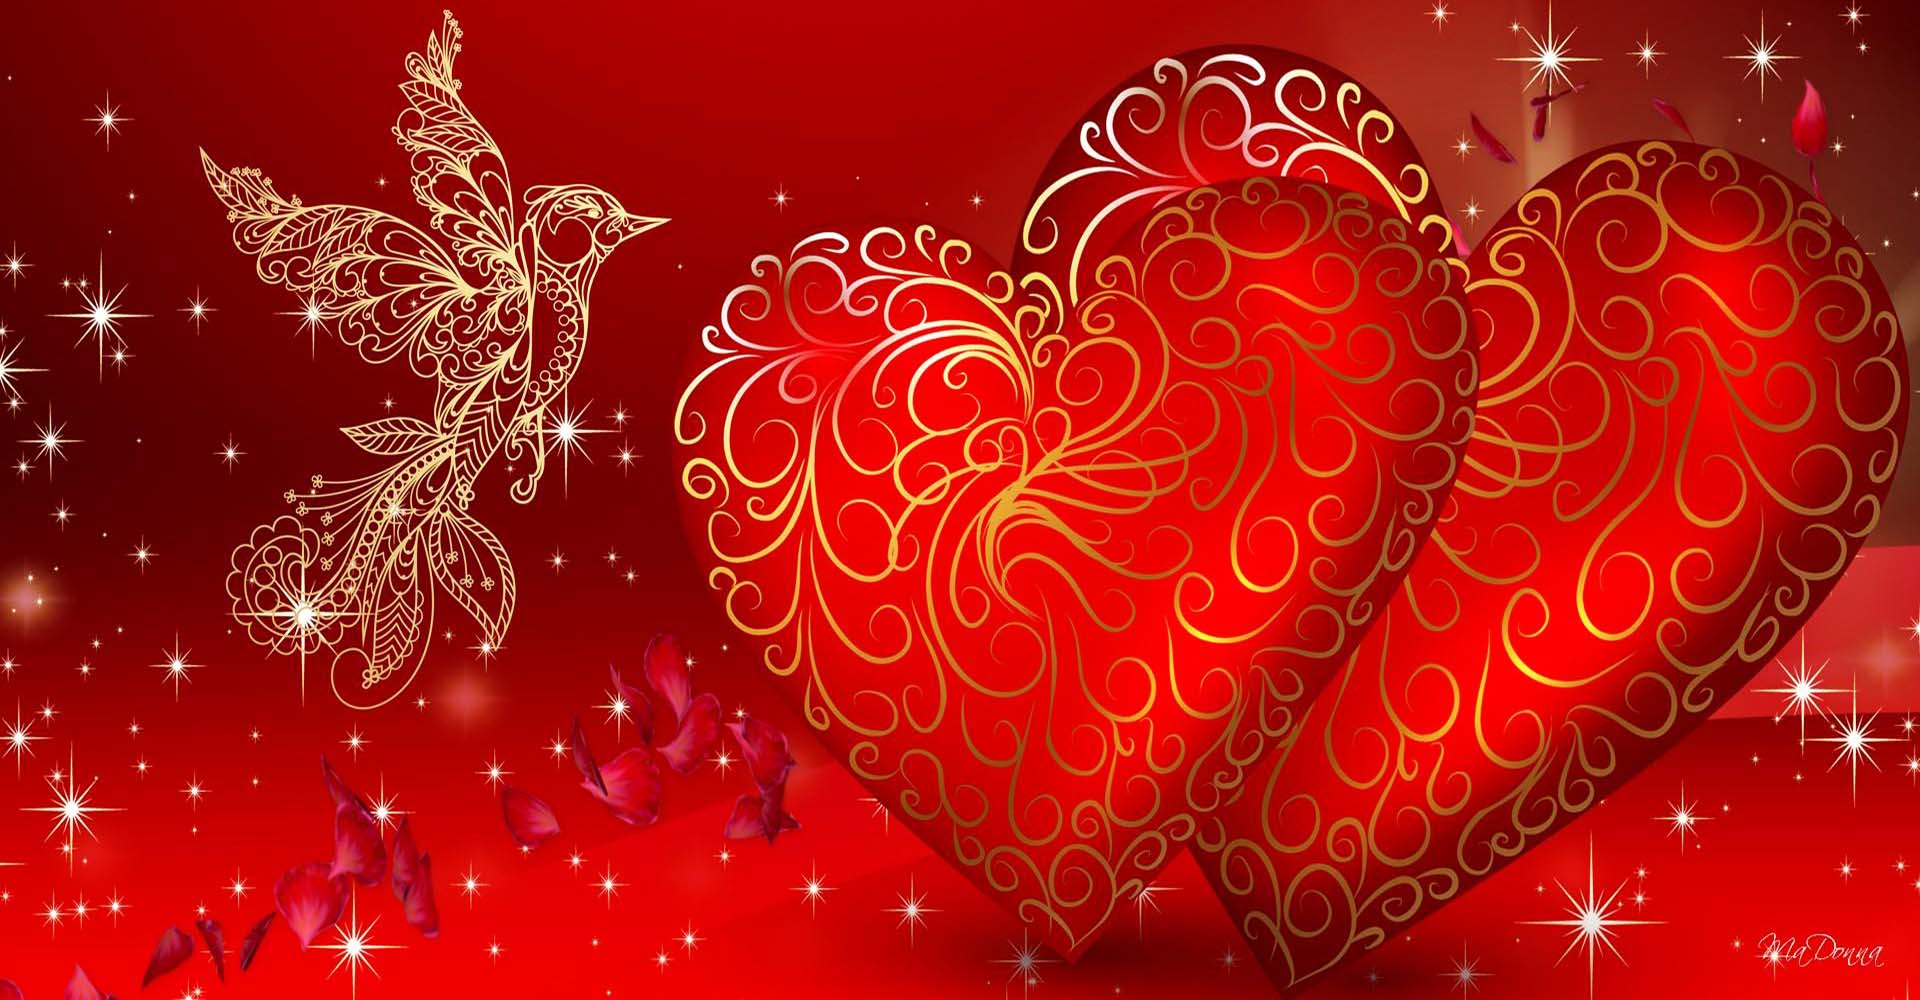 Love Wallpapers In Full Hd : Love Heart Wallpapers 2016 - Wallpaper cave